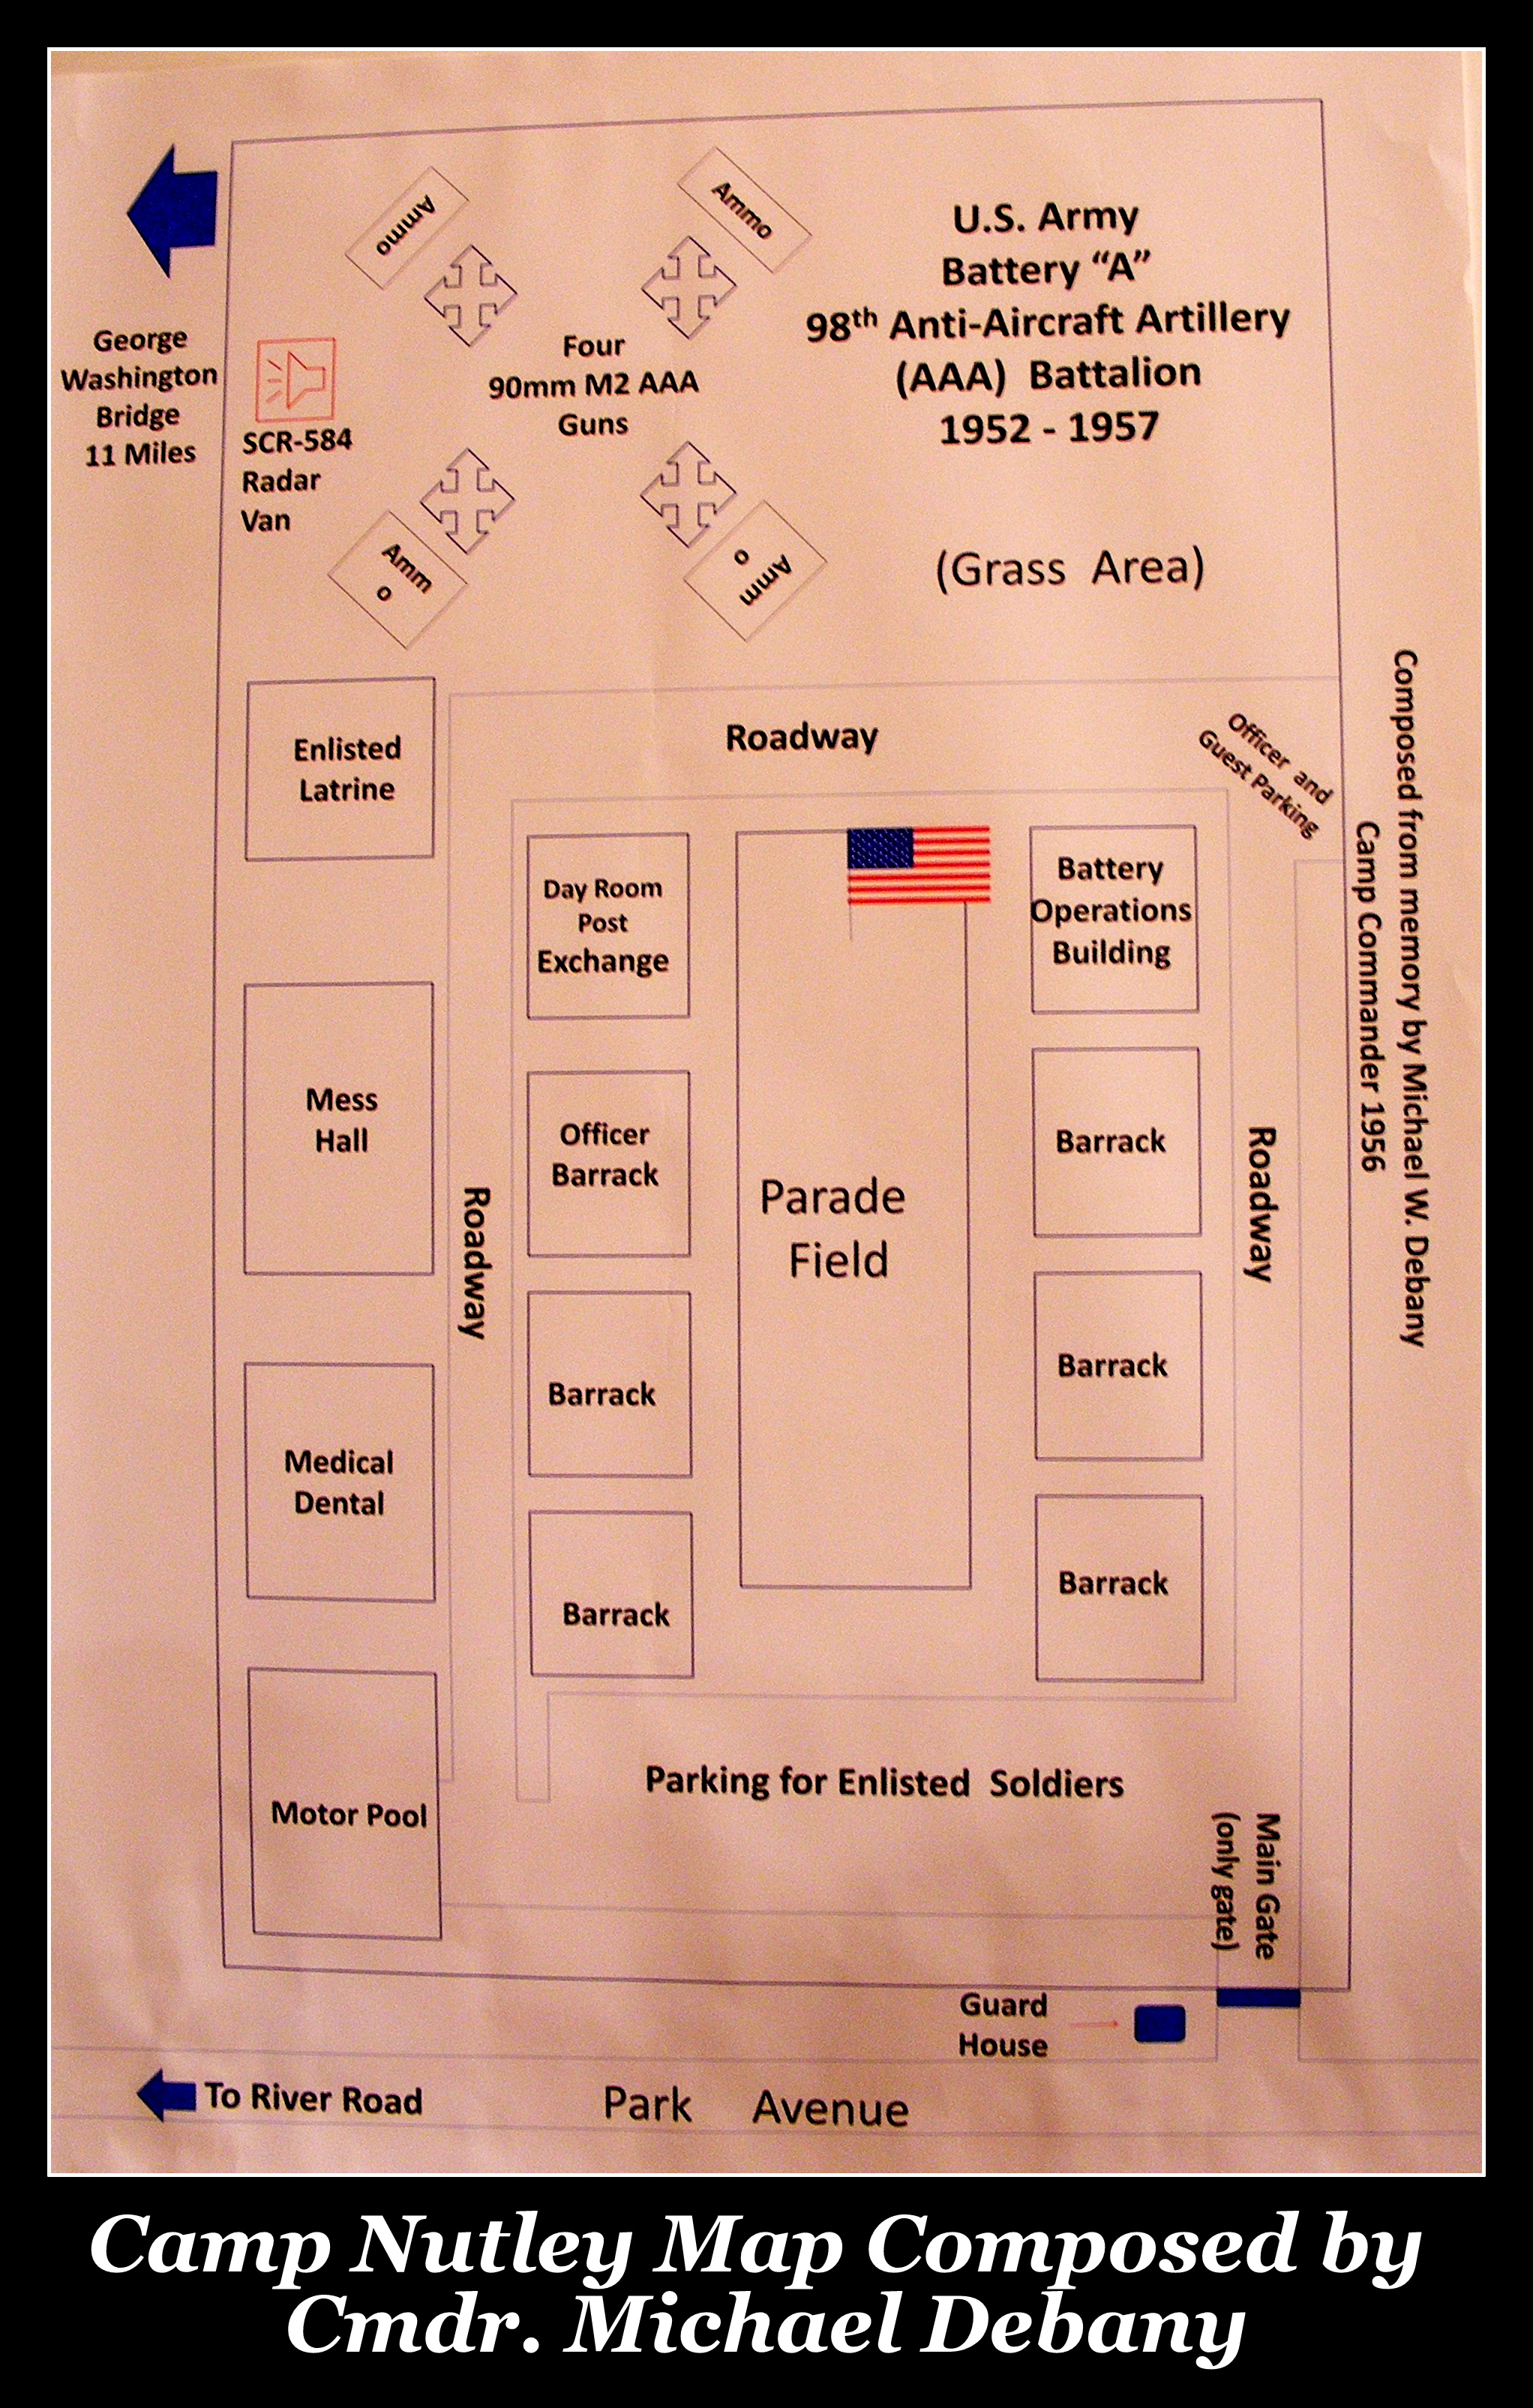 Camp Nutley layout, supplied by former commander Michael W. DeBany